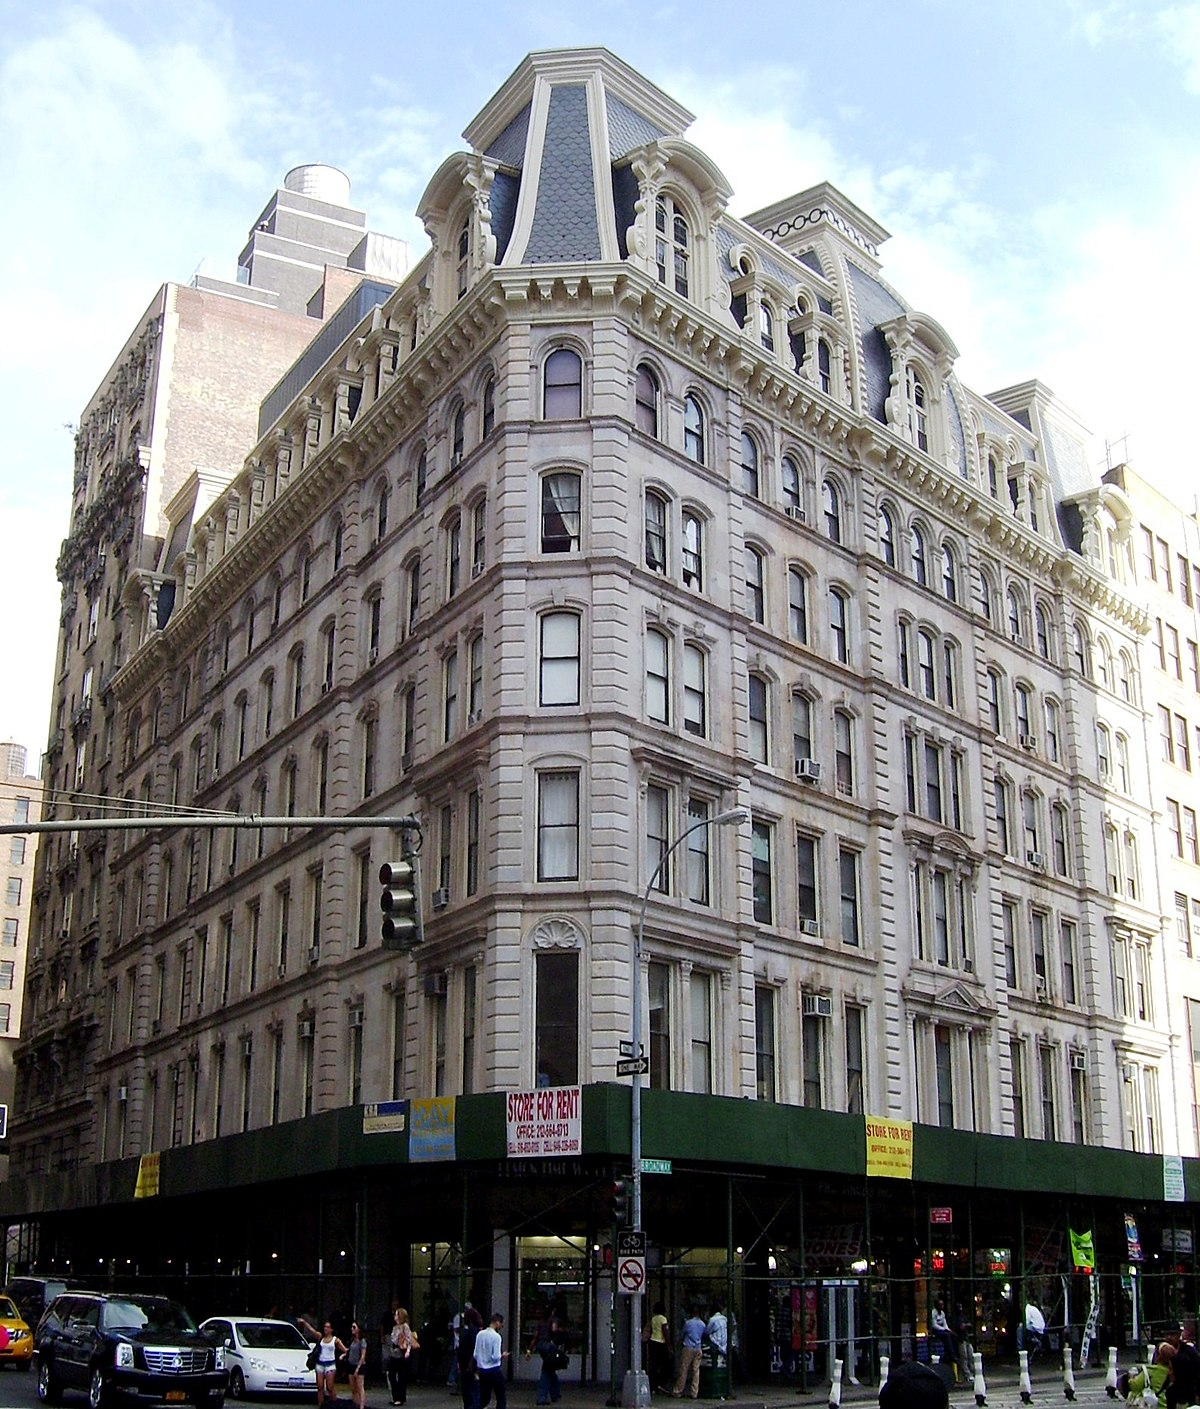 Hotels In New York City >> Grand Hotel New York City Wikipedia